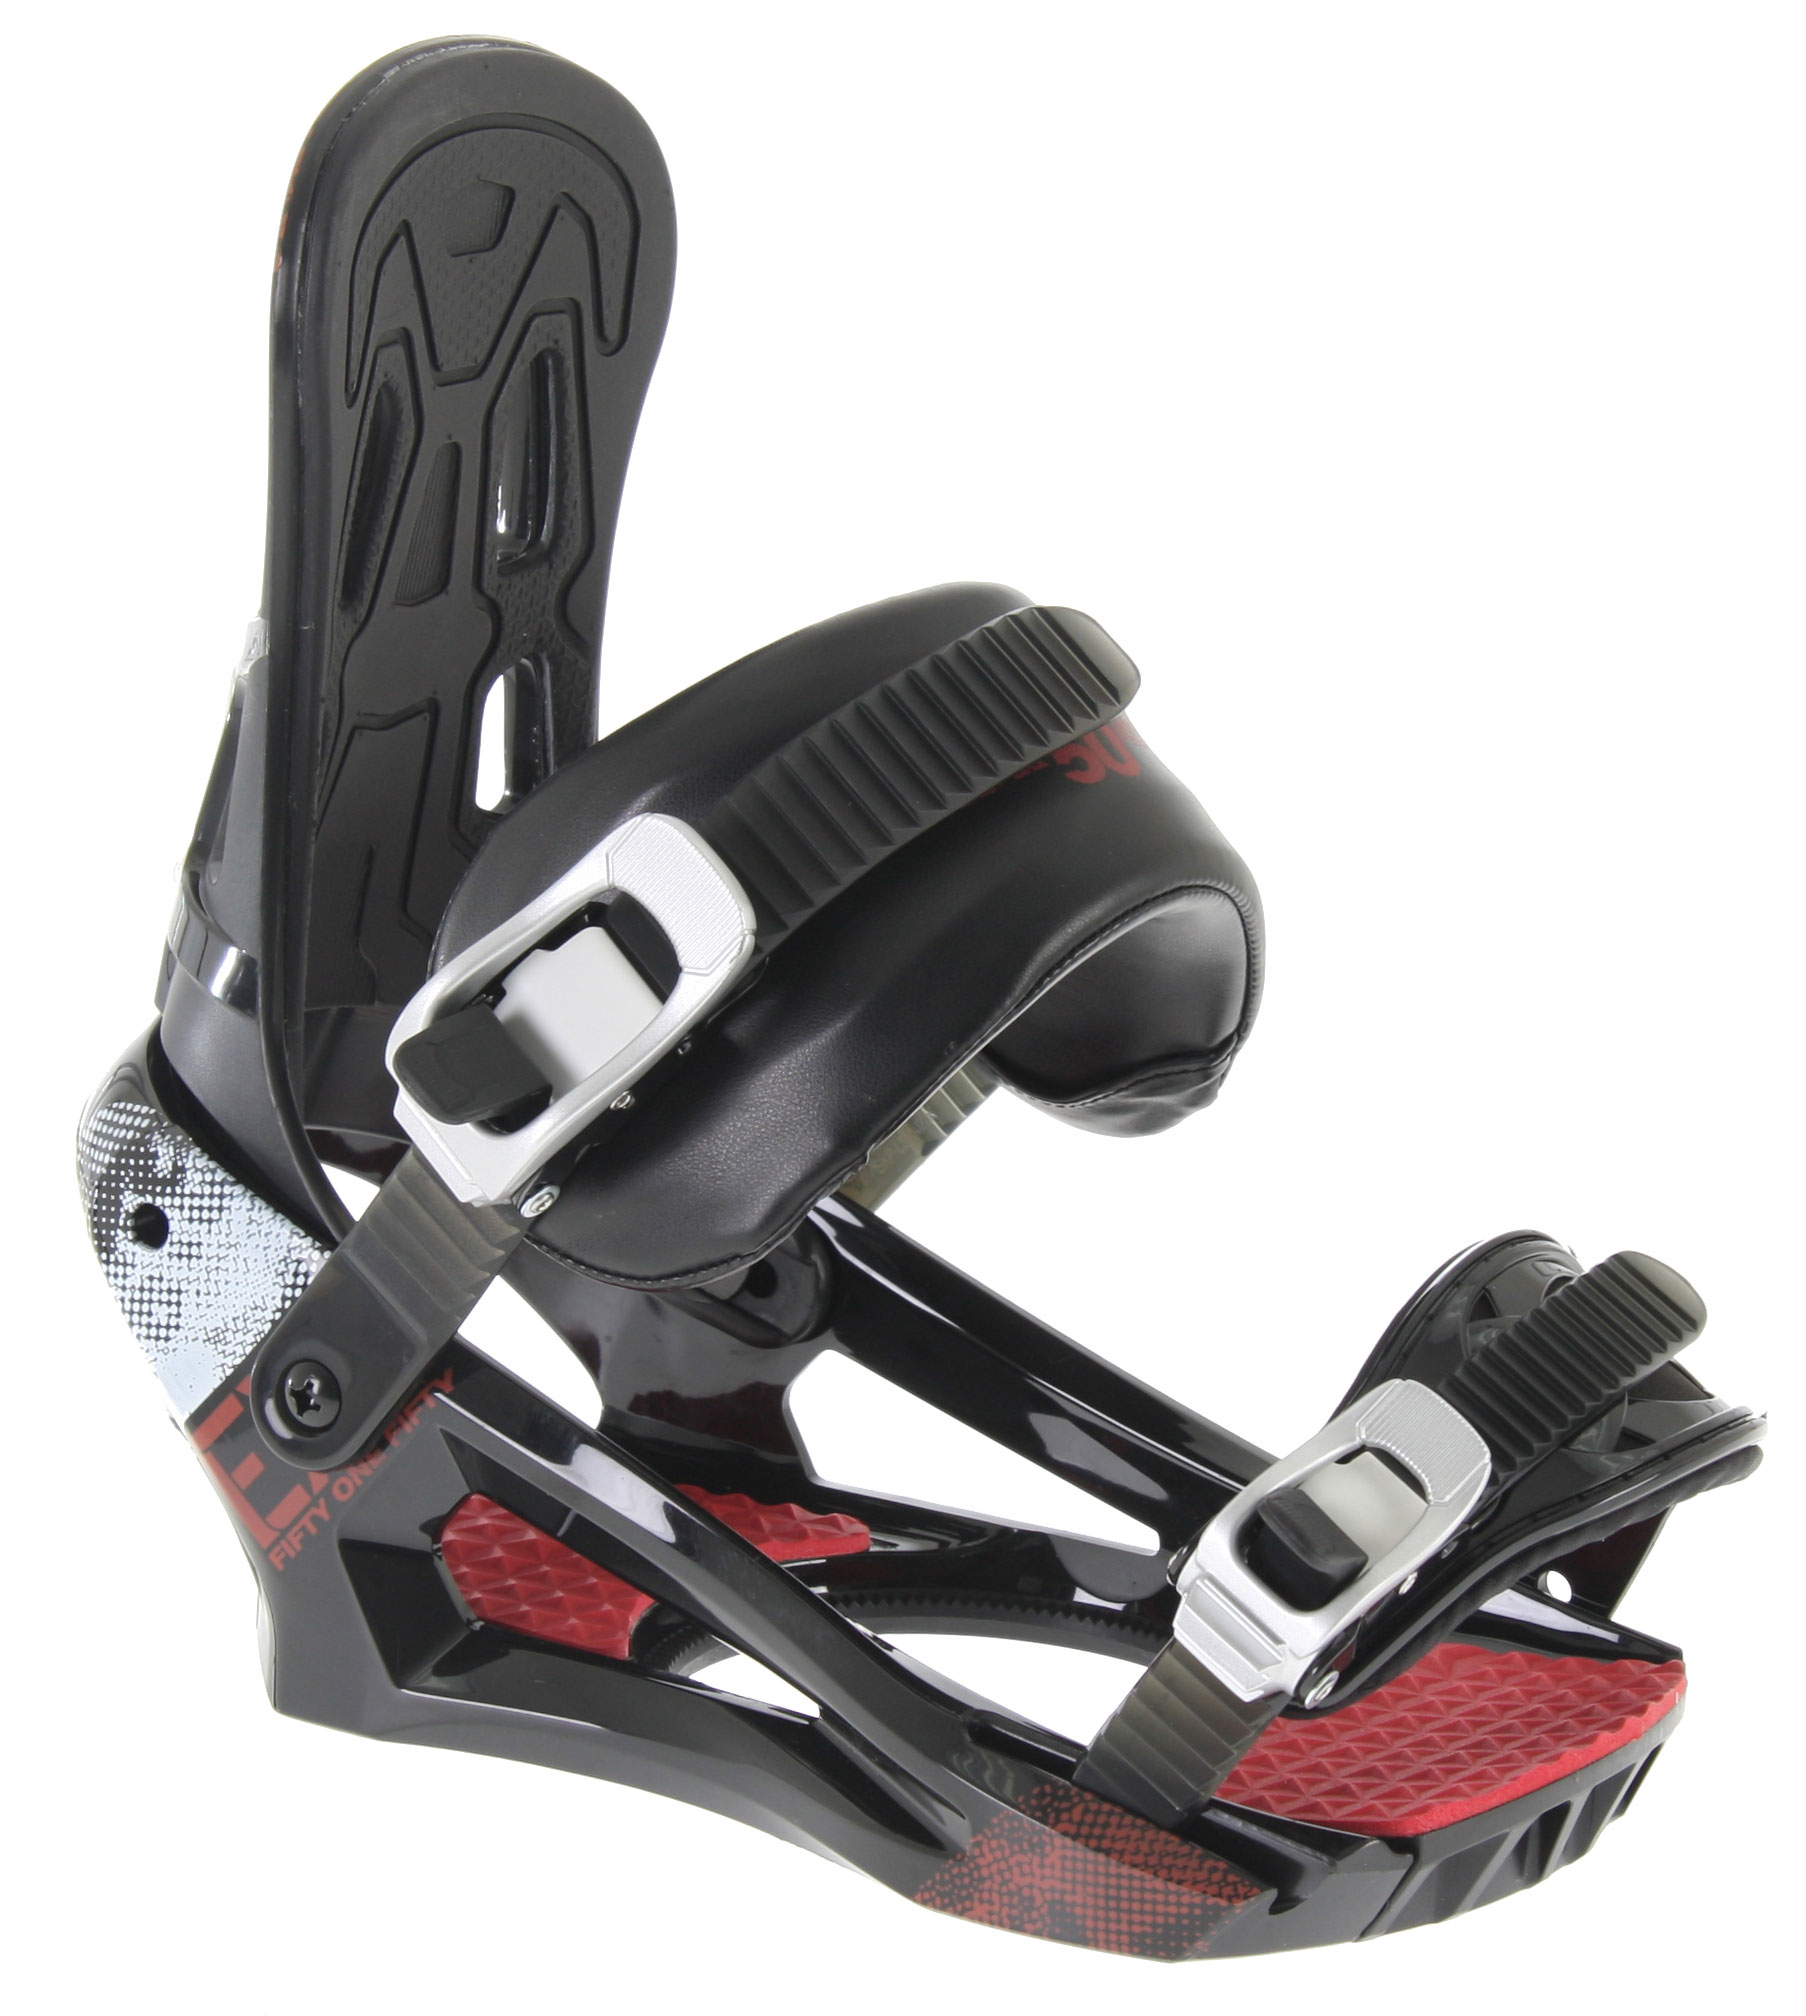 Snowboard With just the right amount of flex, multiple adjustments and lightweight ruggedness, the men's 5150 Exo Snowboard Bindings will keep you stoked and comfortable all day long.Key Features of the 5150 Exo Snowboard Bindings:  NEW! Reaction chassis with adjustable toe ramps for ultimate response  NEW! Padded, fabric enclosed PlushFlex ankle straps for comfort with power  Aluminum Lift-Release Ratchets for smooth, quick adjustment  XBand Toe Straps for multi-position flexibility  Padded Anatomical Highback for maximum comfort and control  Flip-Lock, Tool-Less, Forward Lean Adjustment  360degrees Disc Mount for virtually limitless stance options - $61.95